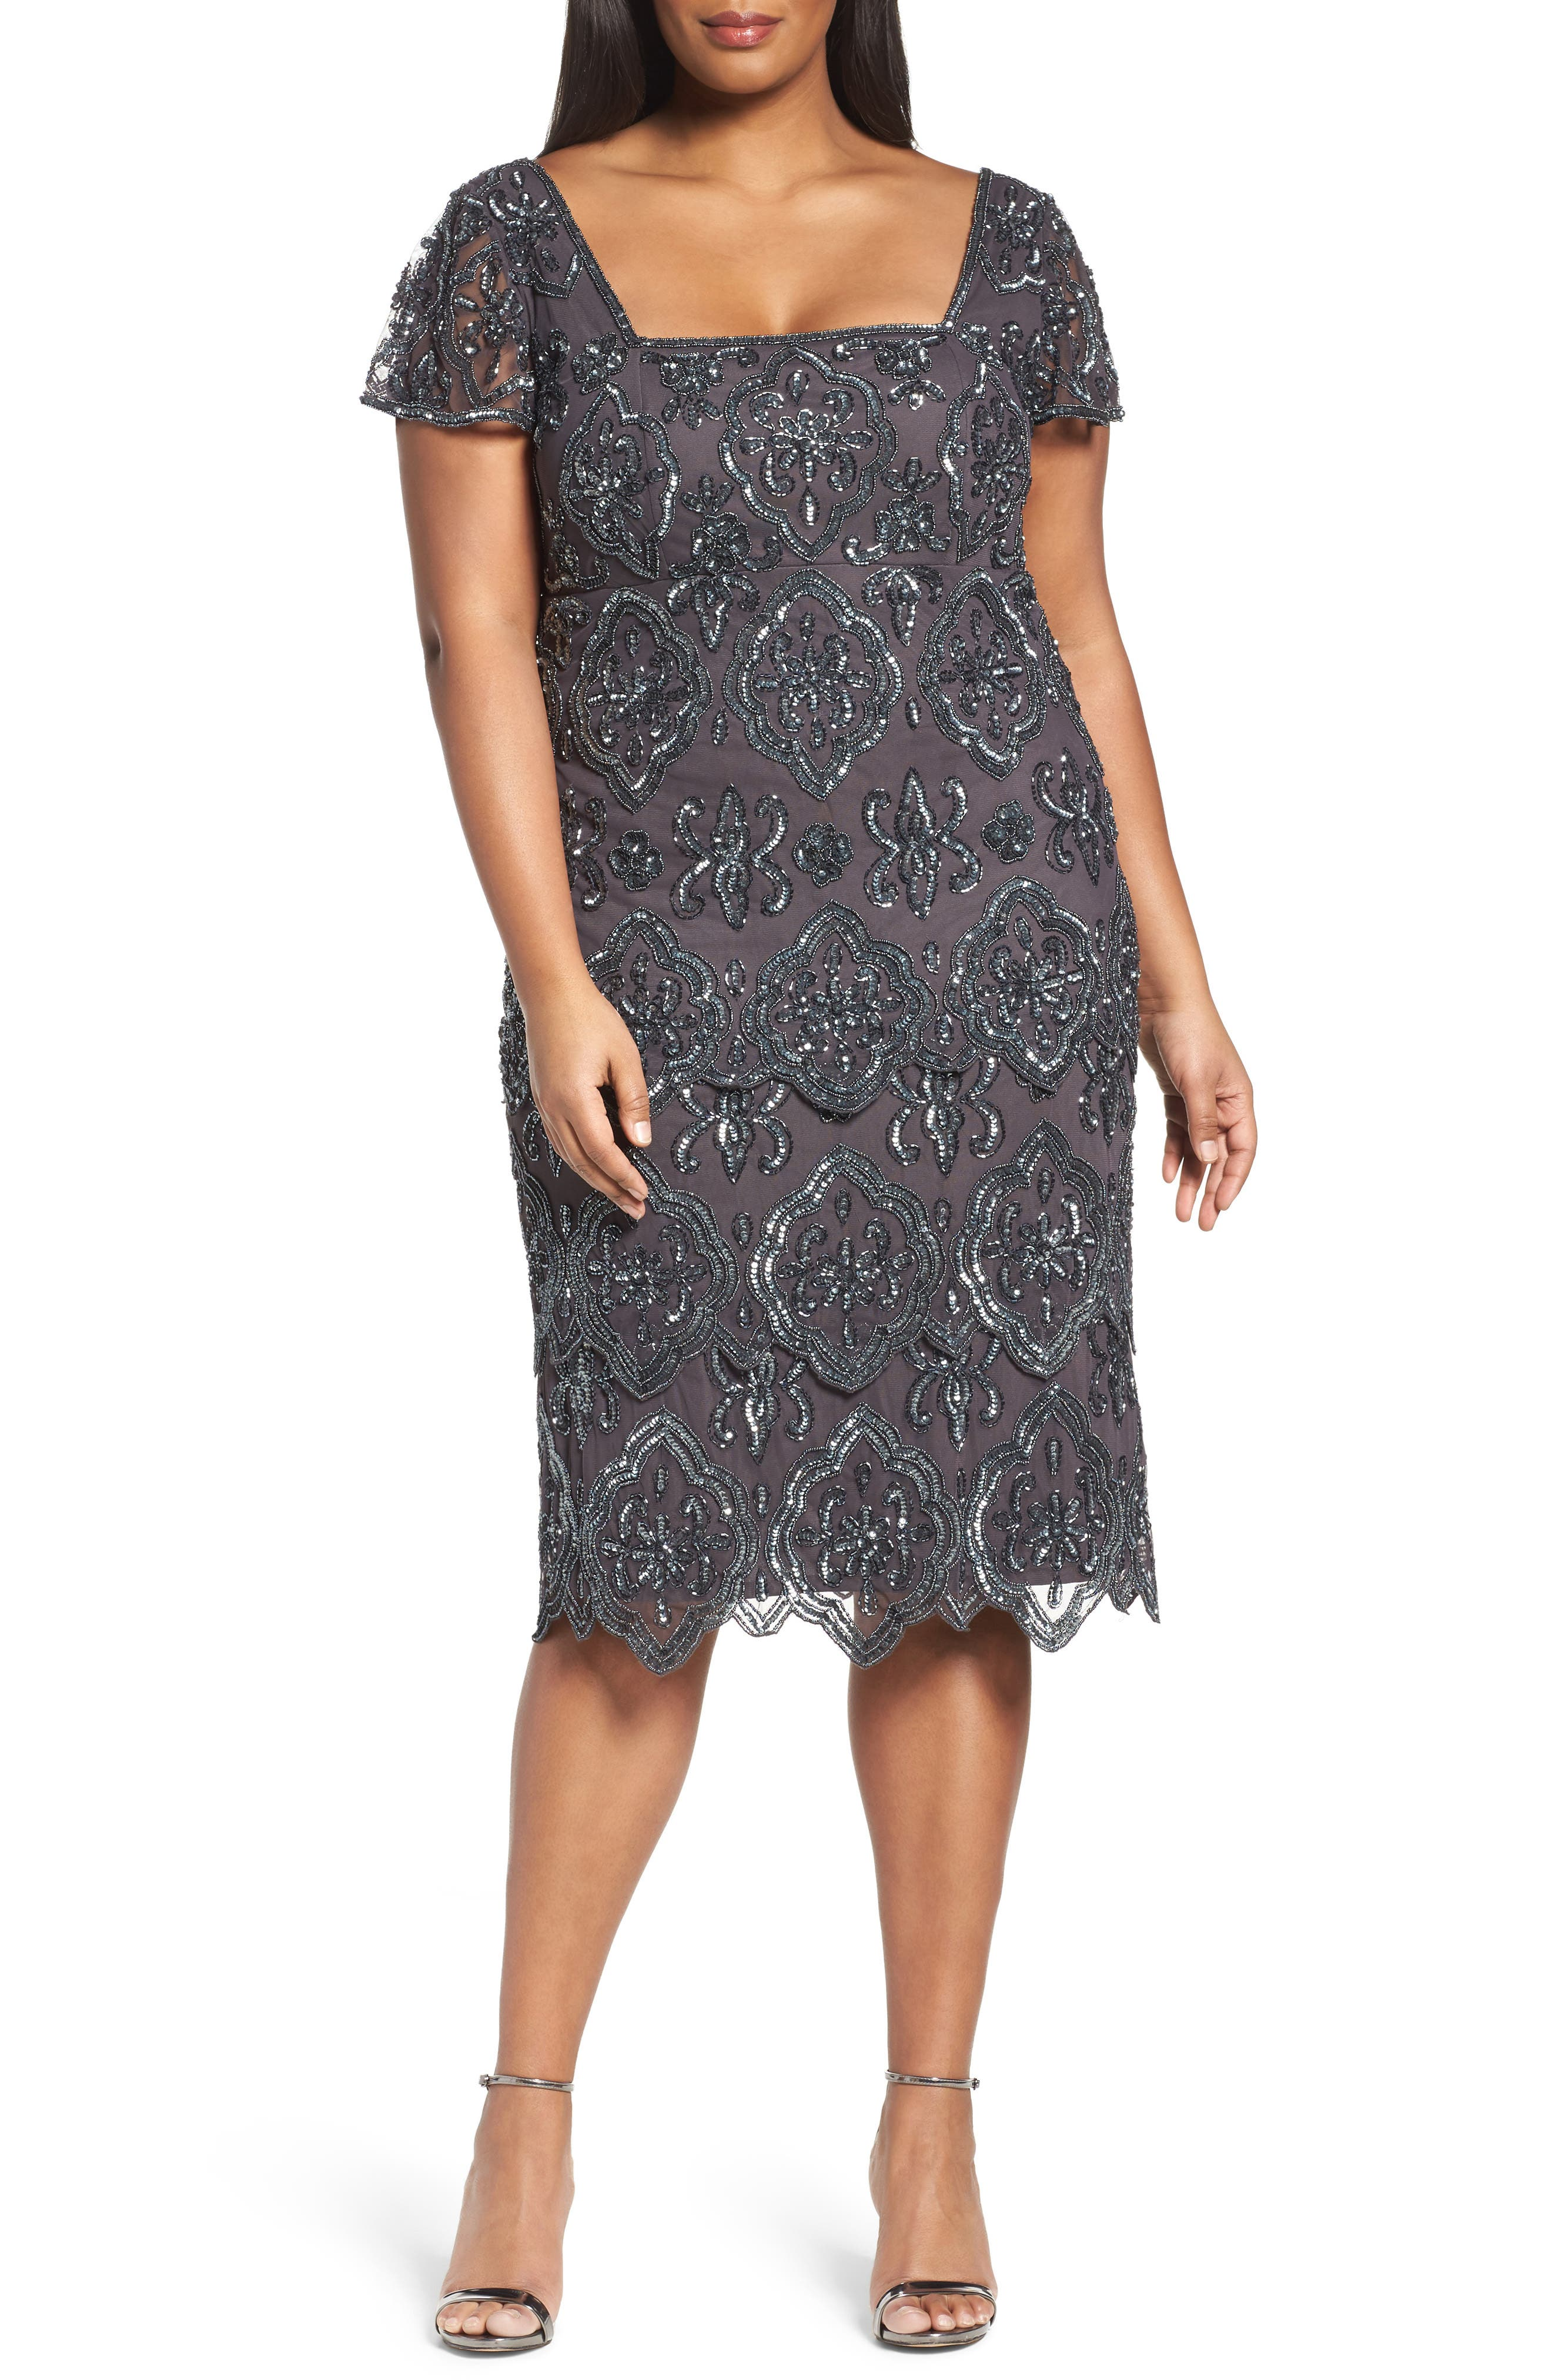 Pisarro Nights Lace Tiers Embellished Cocktail Sheath Dress (Plus Size)